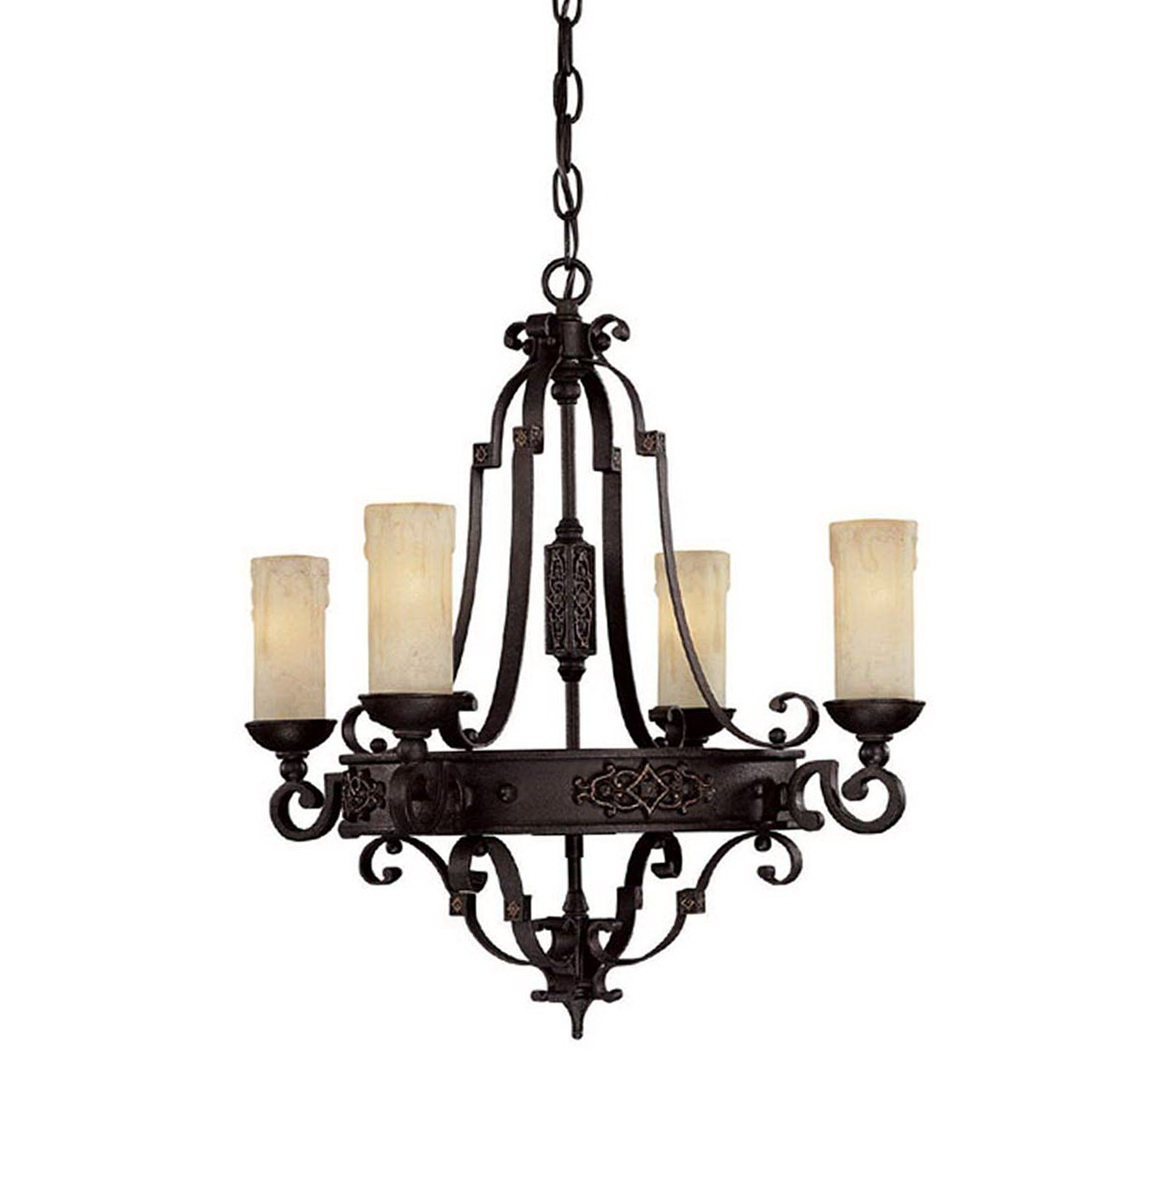 Hanging candle chandelier non electric home design ideas Hanging candle chandelier non electric